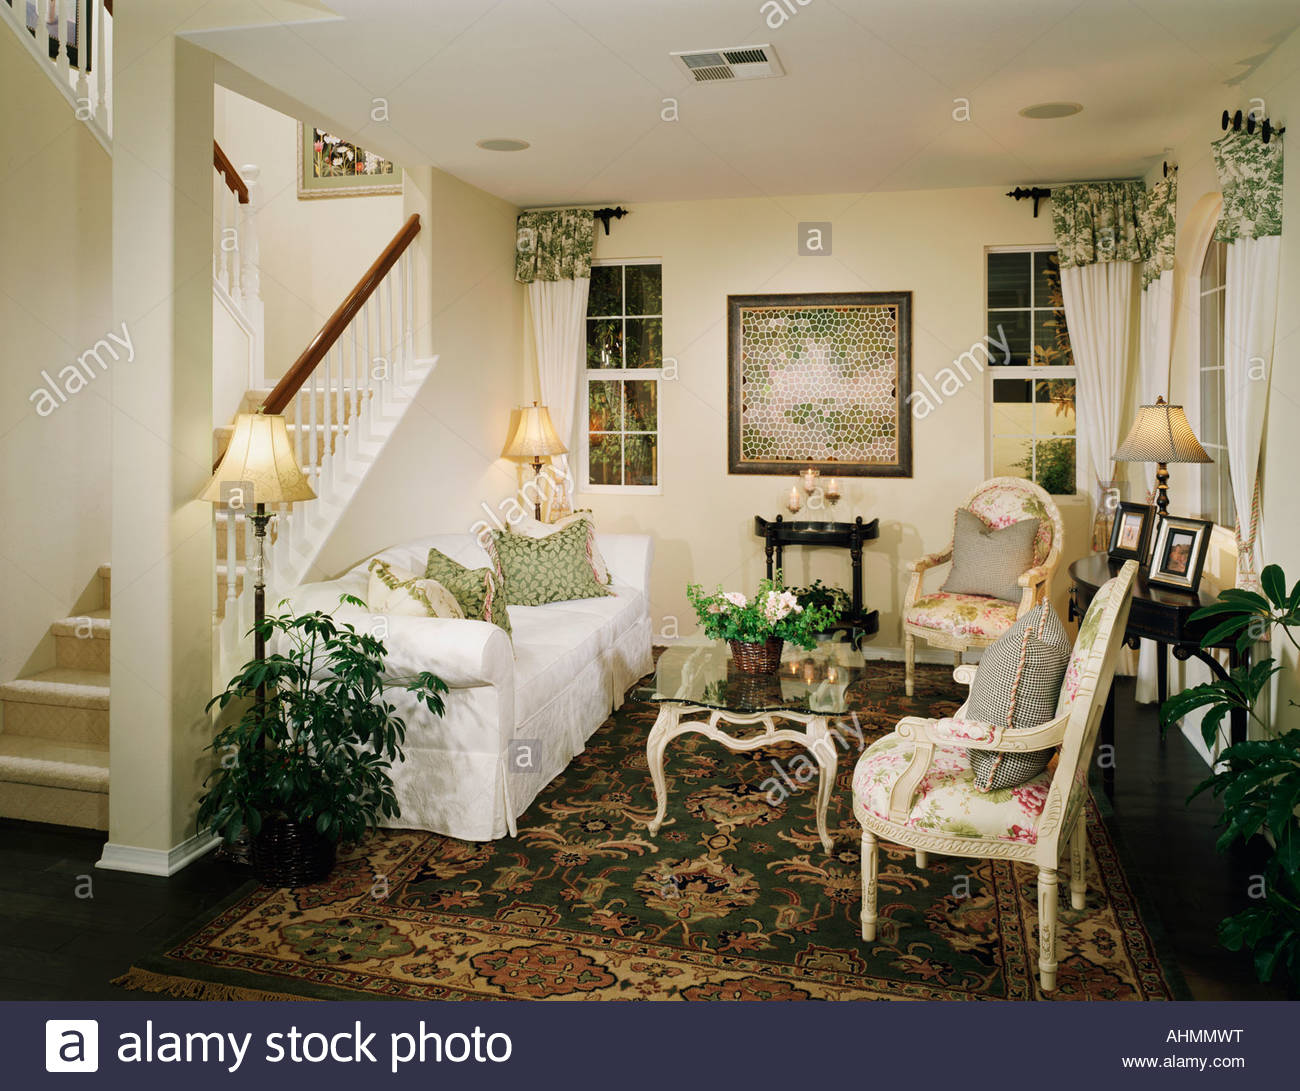 marvelous old fashioned living room | Cozy Sitting Room with an Old-Fashioned Style Stock Photo ...